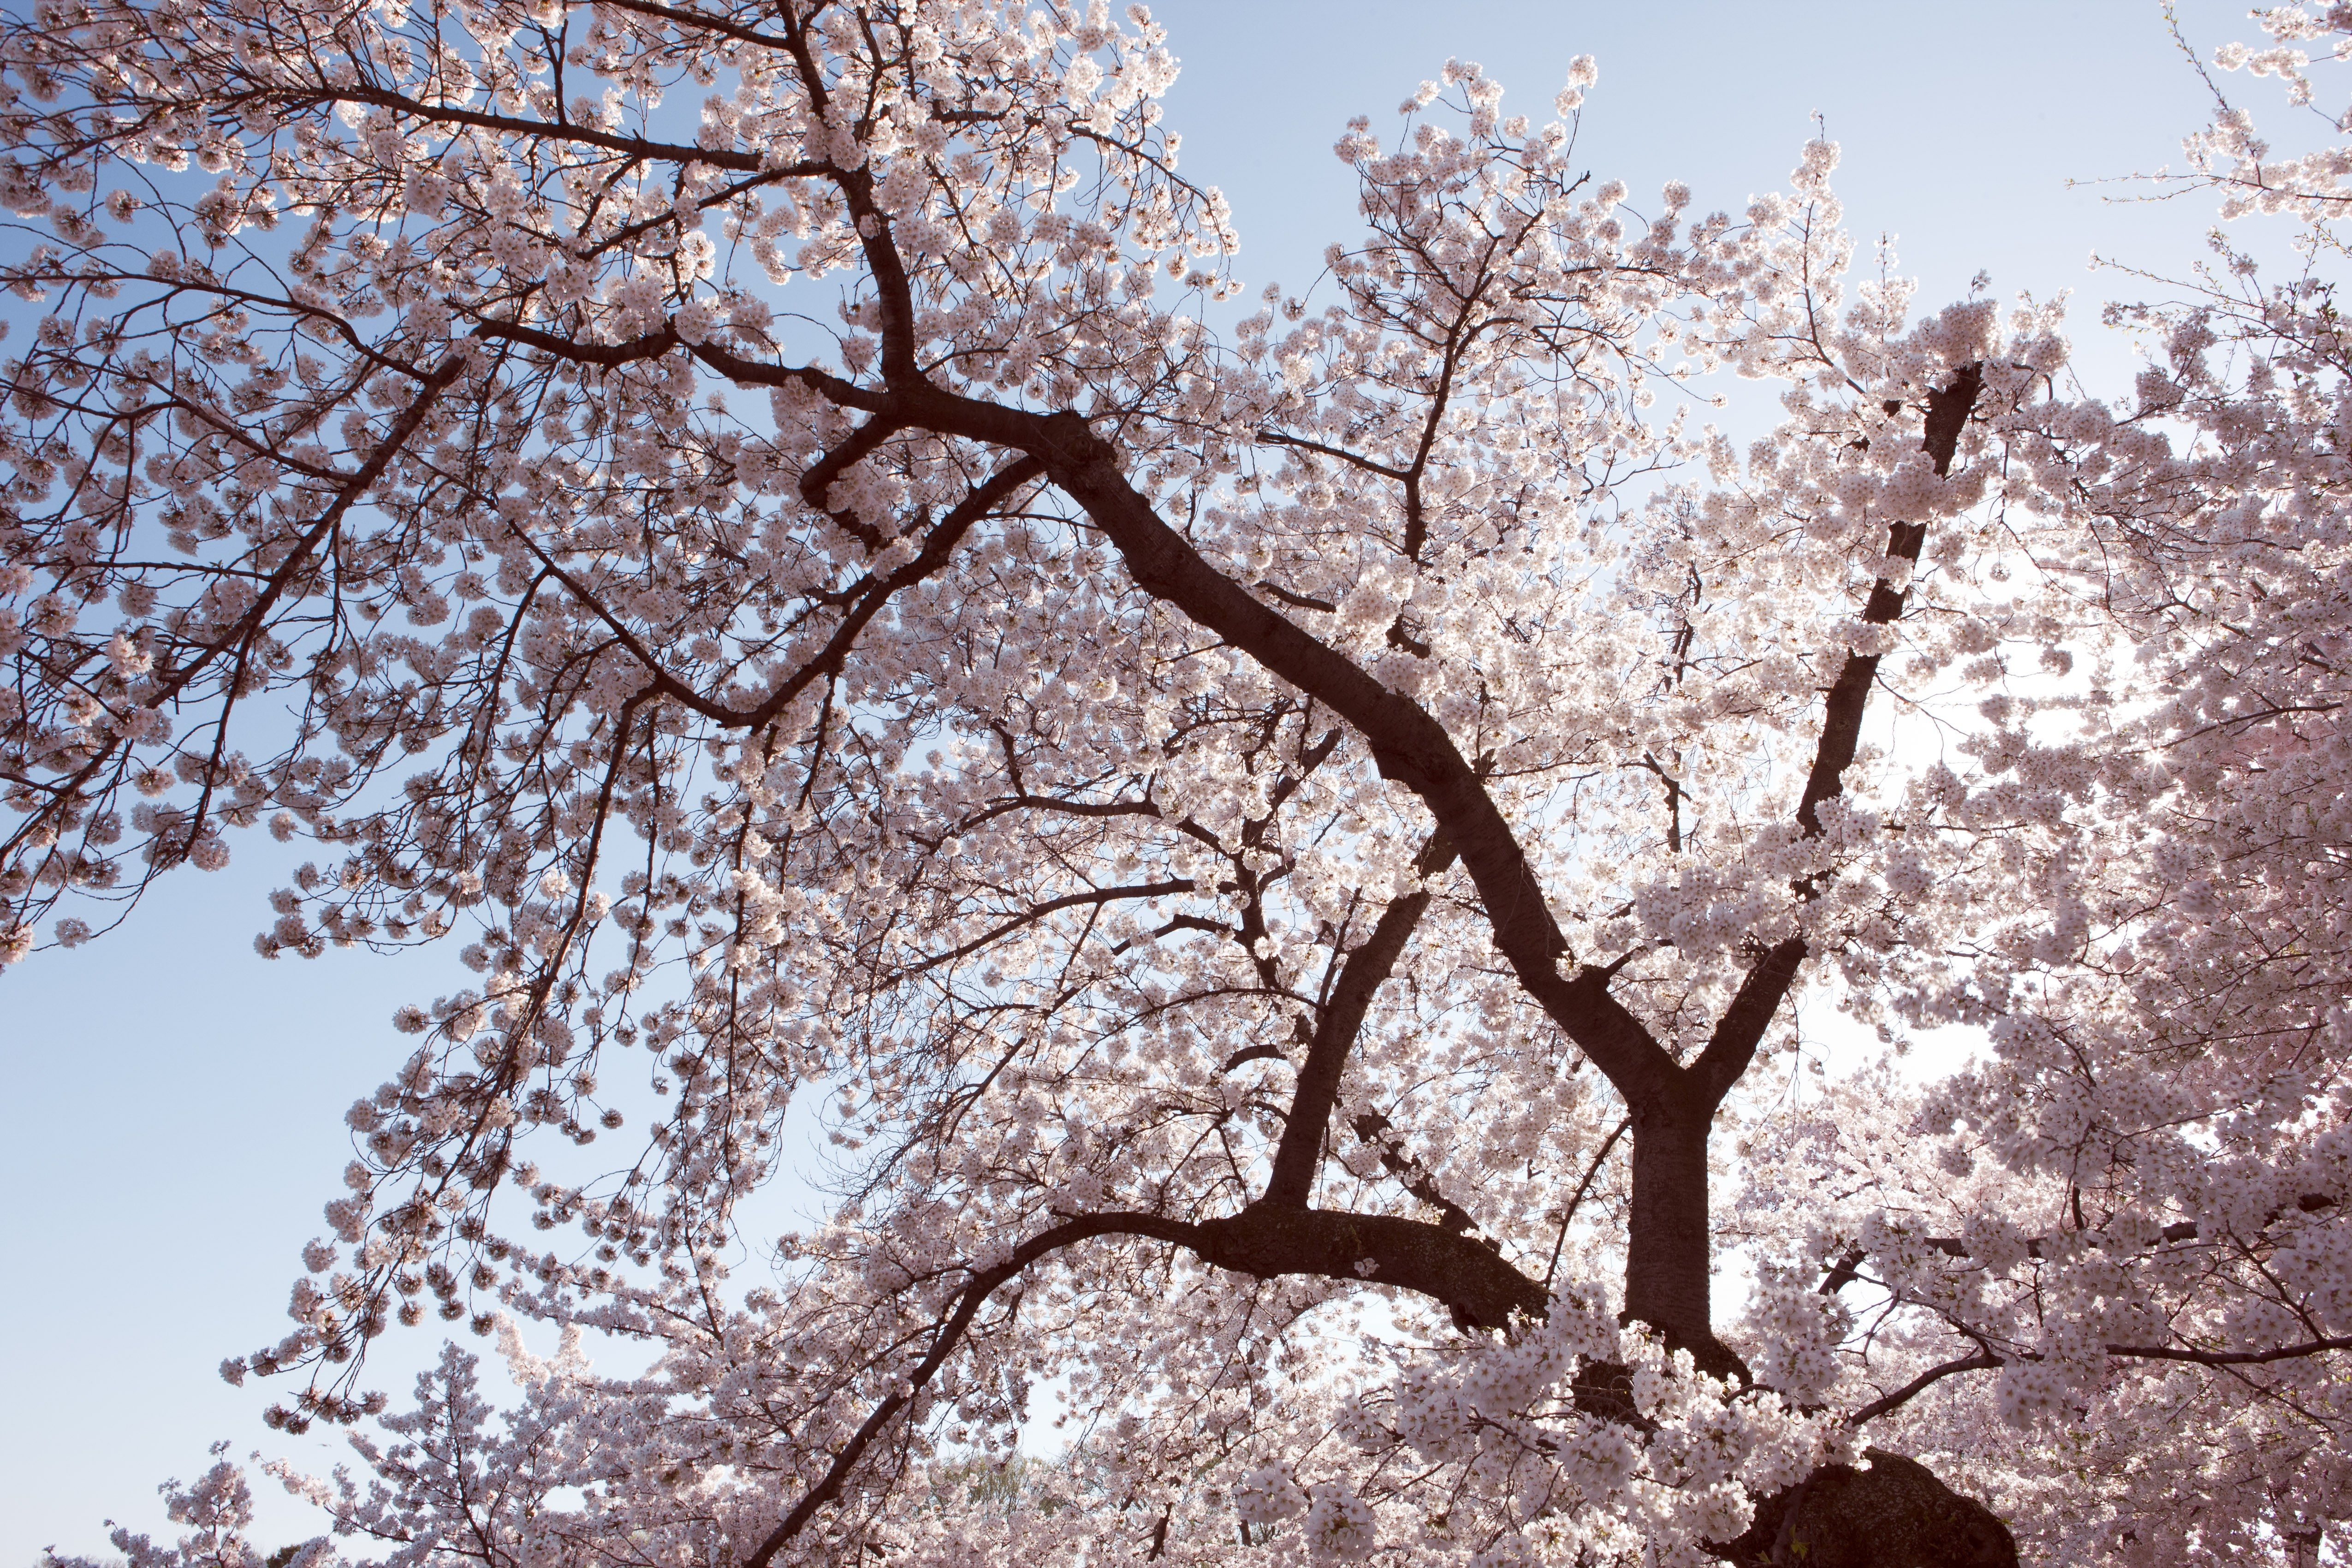 The Smoke Collective On Twitter Cherry Blossom Blossom Cherry Blossom Season